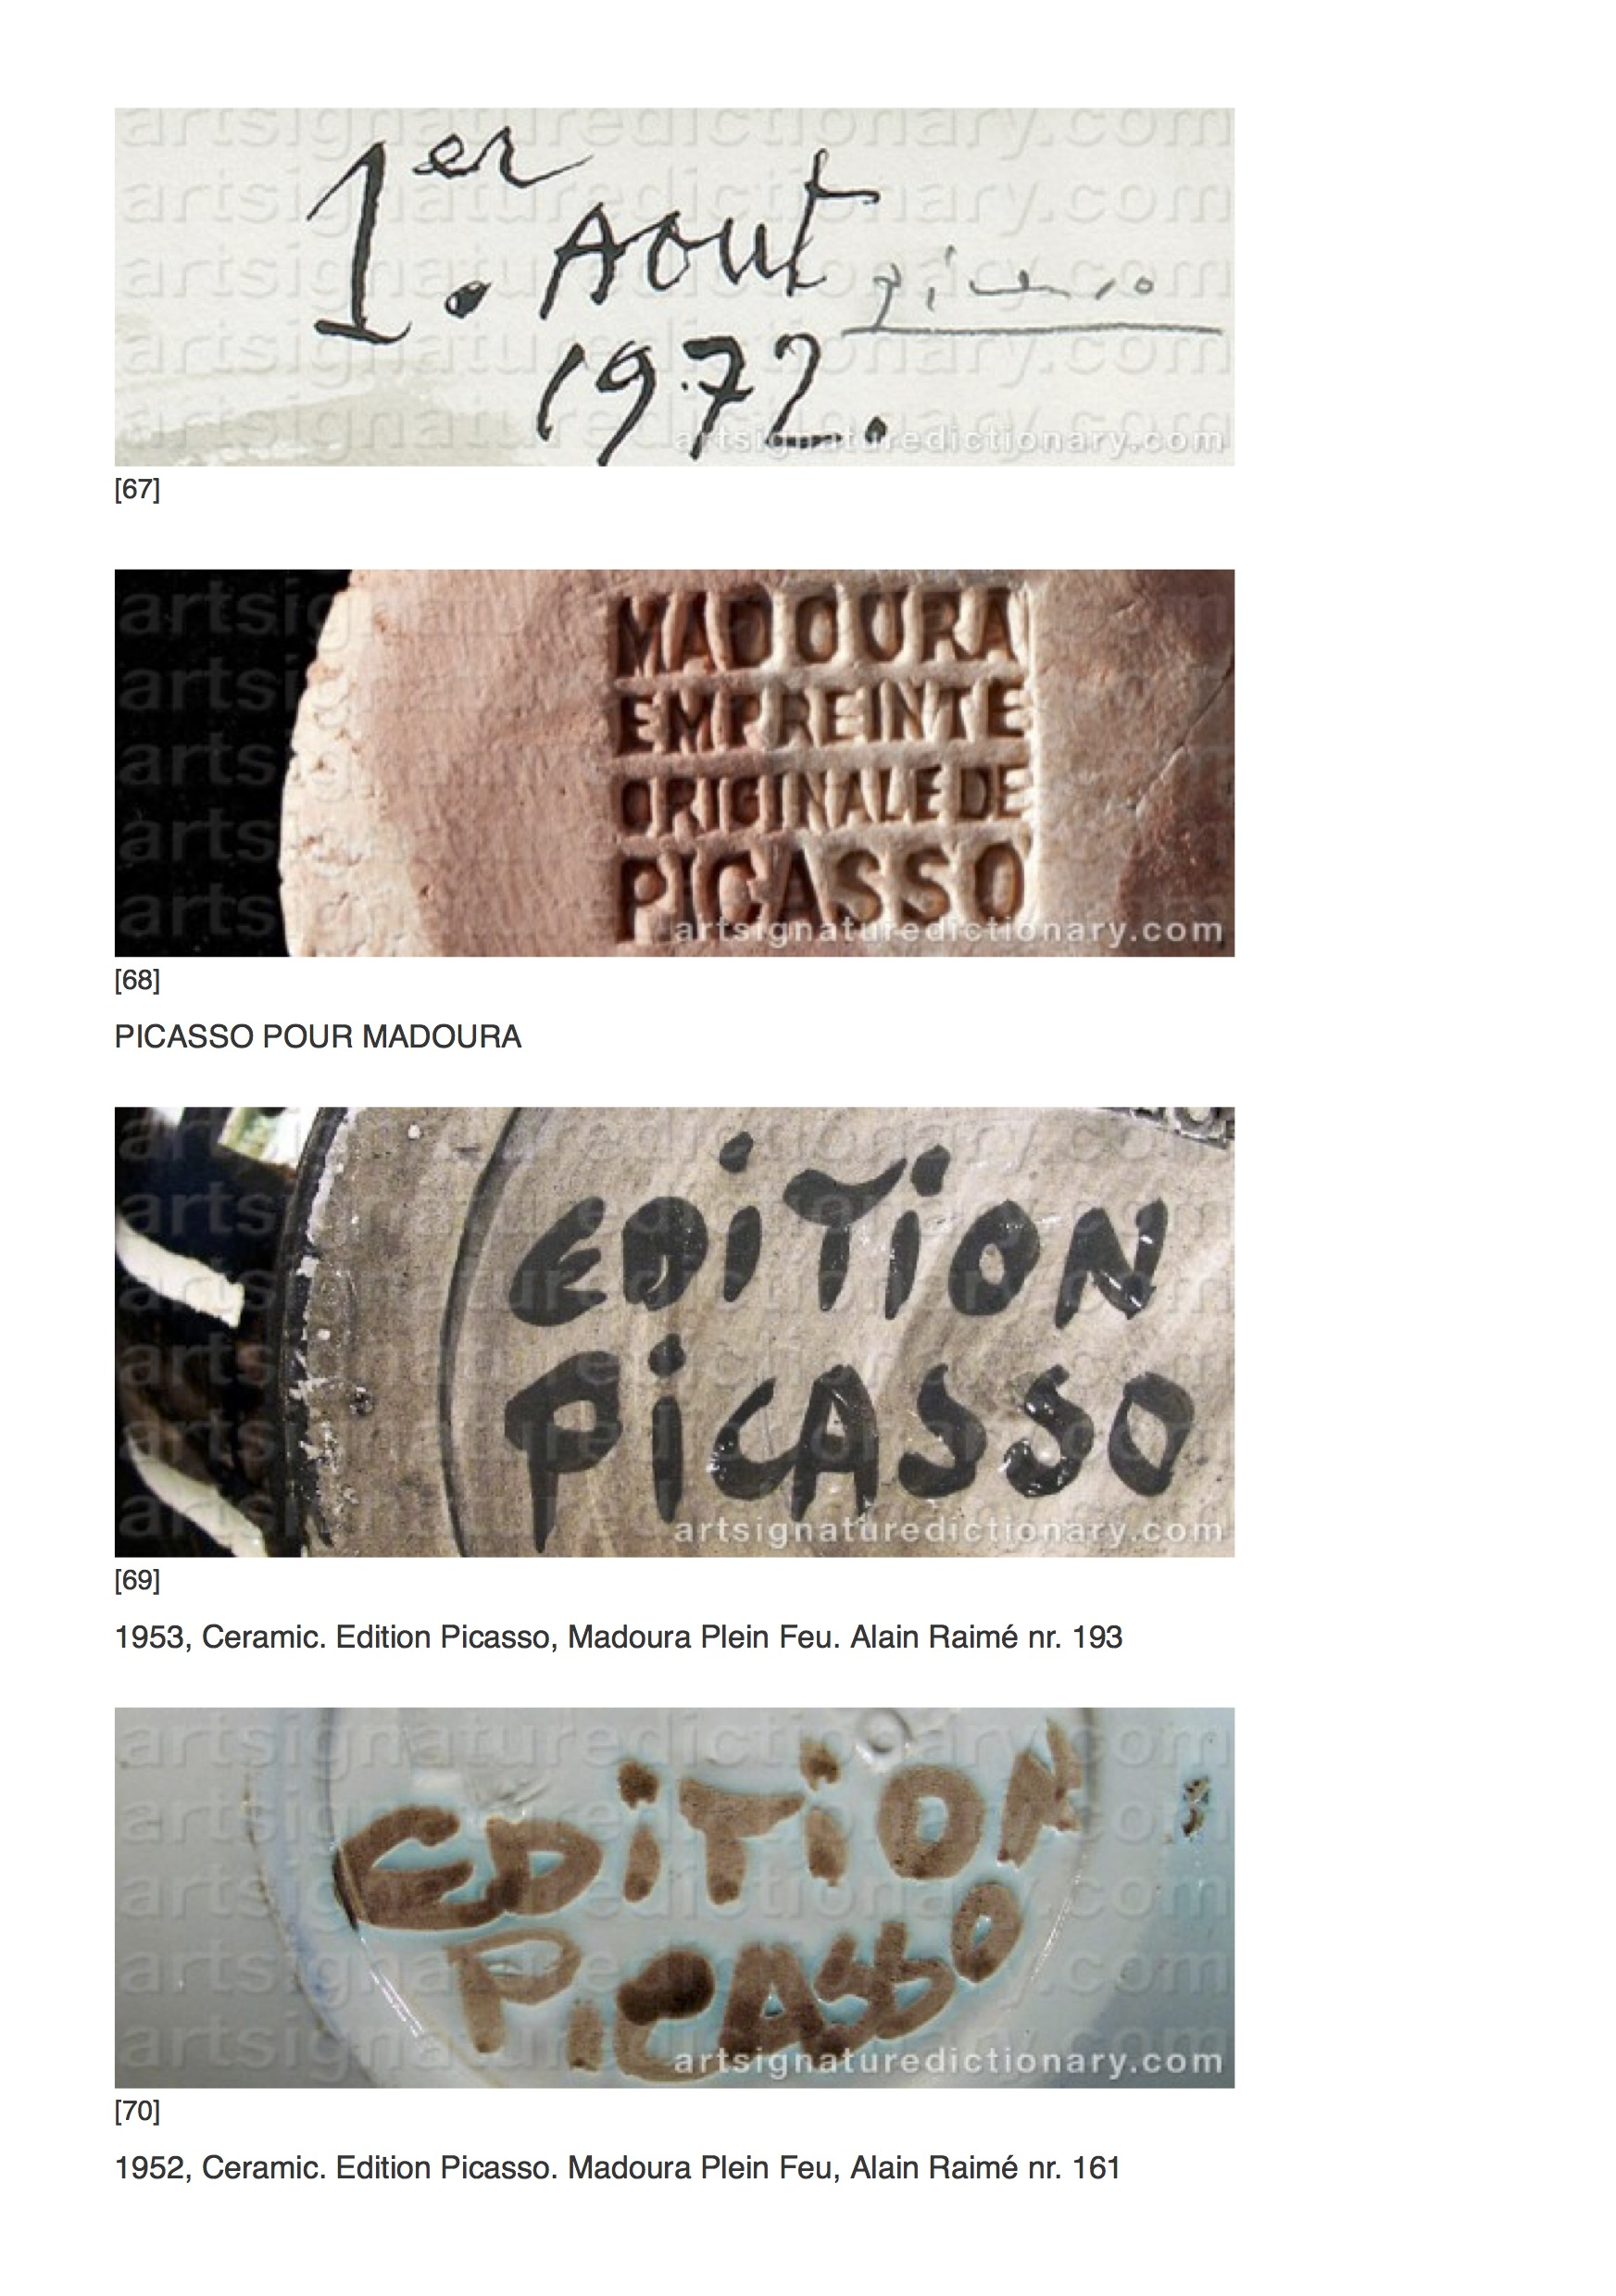 PICASSO, Pablo _ Artist's signatures and monograms, biographies and prices by Art Signature Dictionary15.jpg